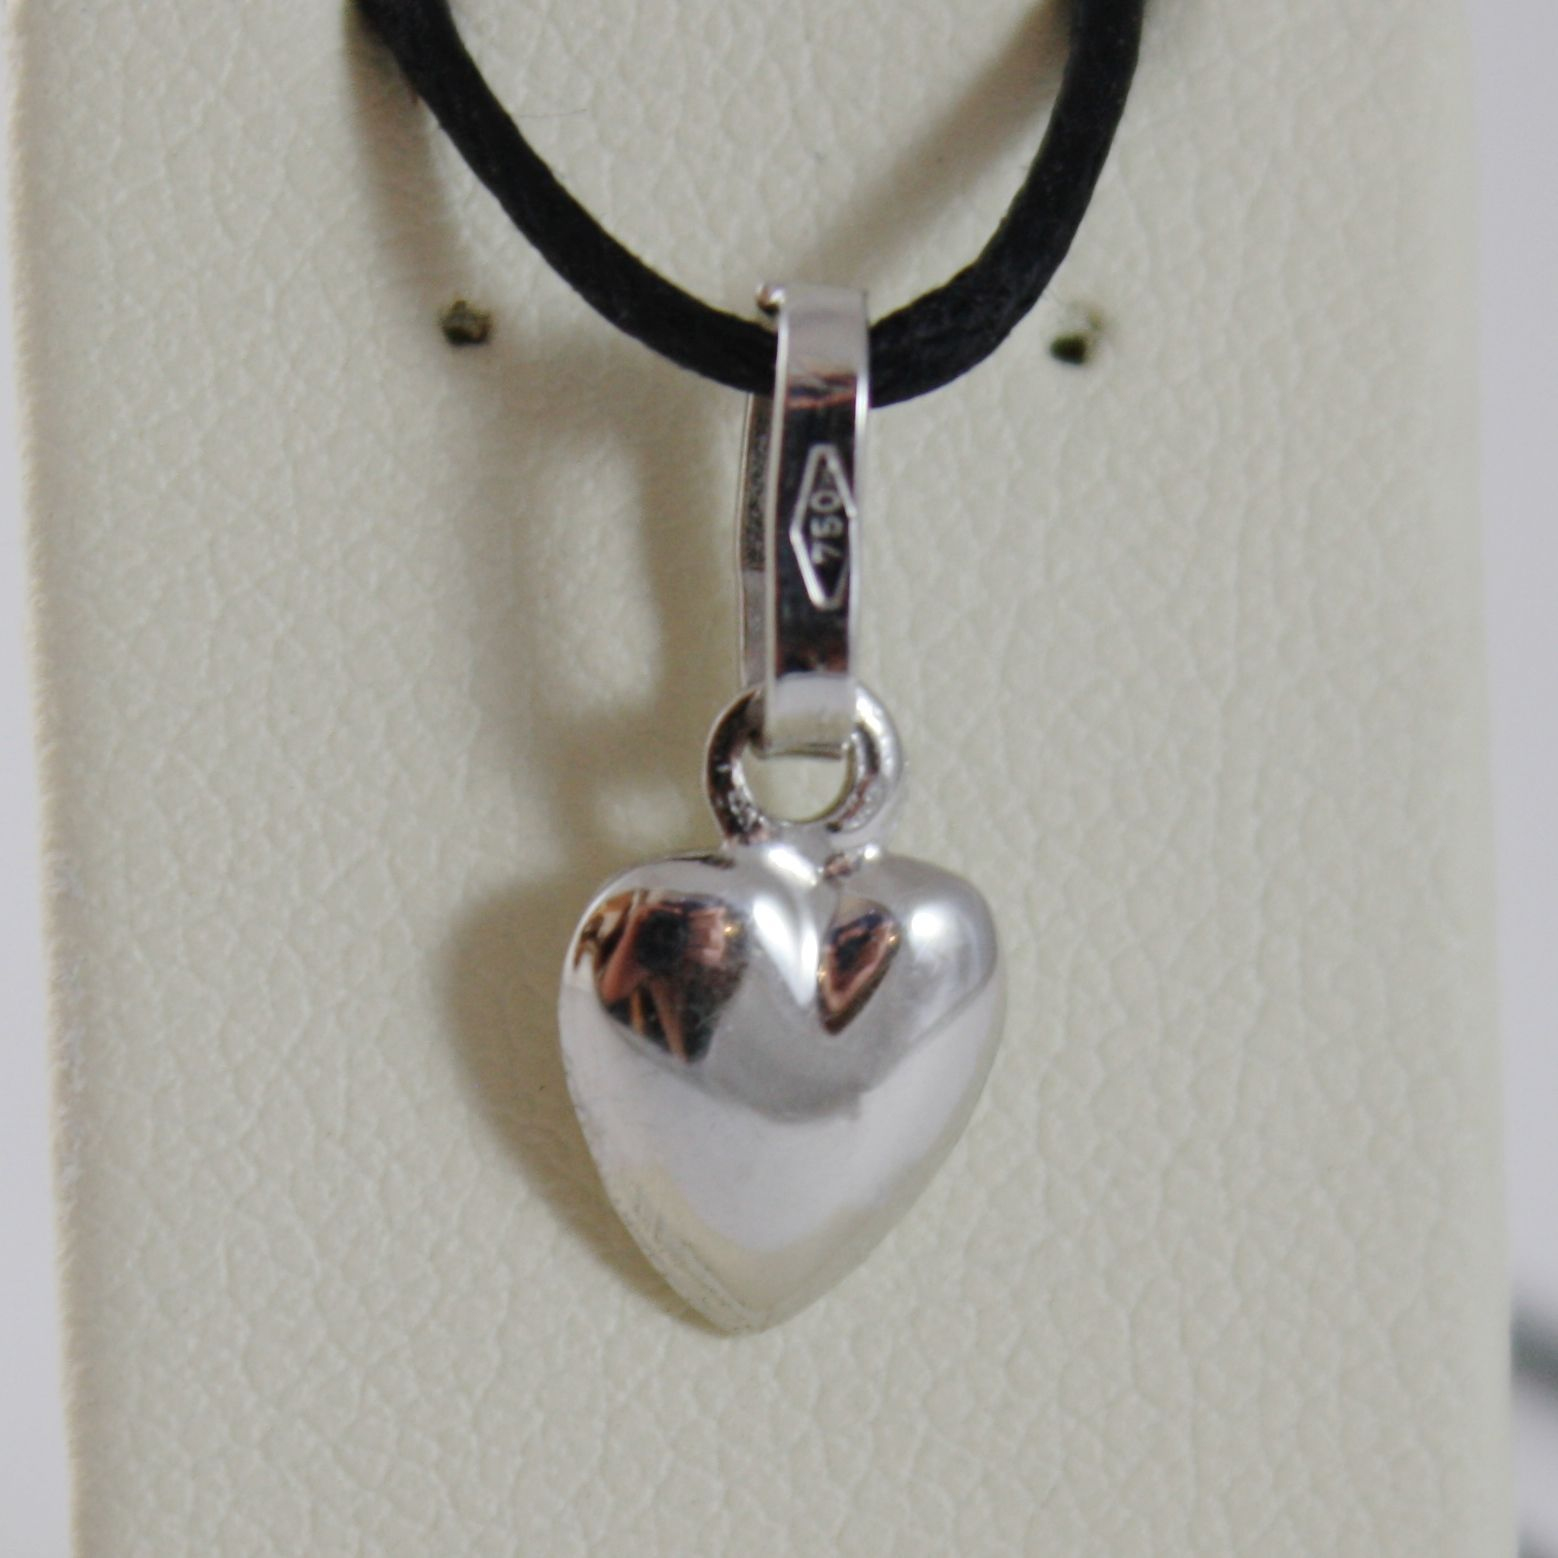 18K WHITE GOLD MINI ROUNDED HEART PENDANT CHARM, 11 MM, 0.43 INCH MADE IN ITALY